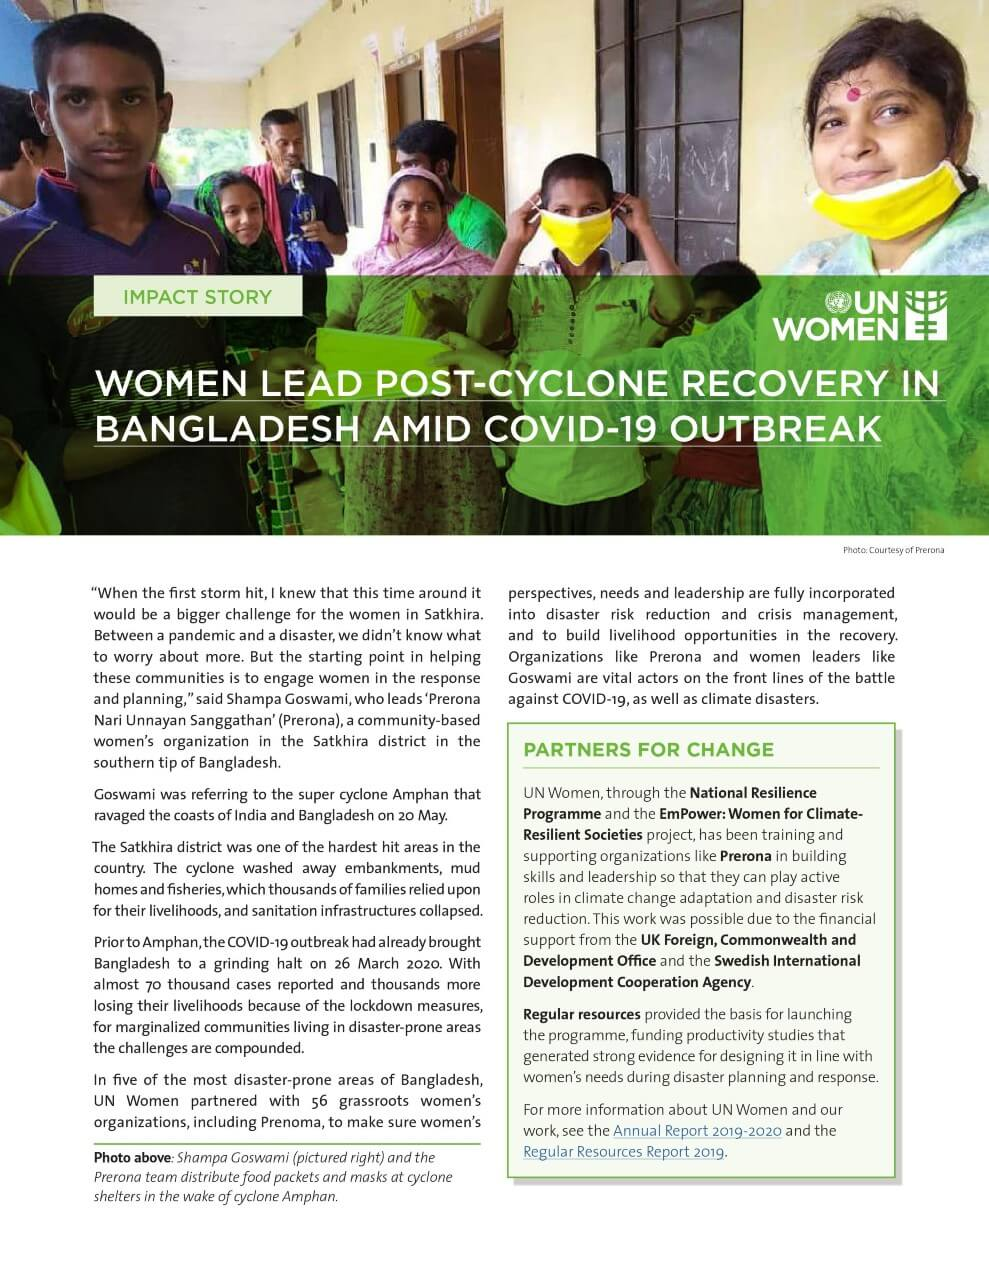 UN Women impact story: Women lead post-cyclone recovery in Bangladesh amid COVID-19 outbreak